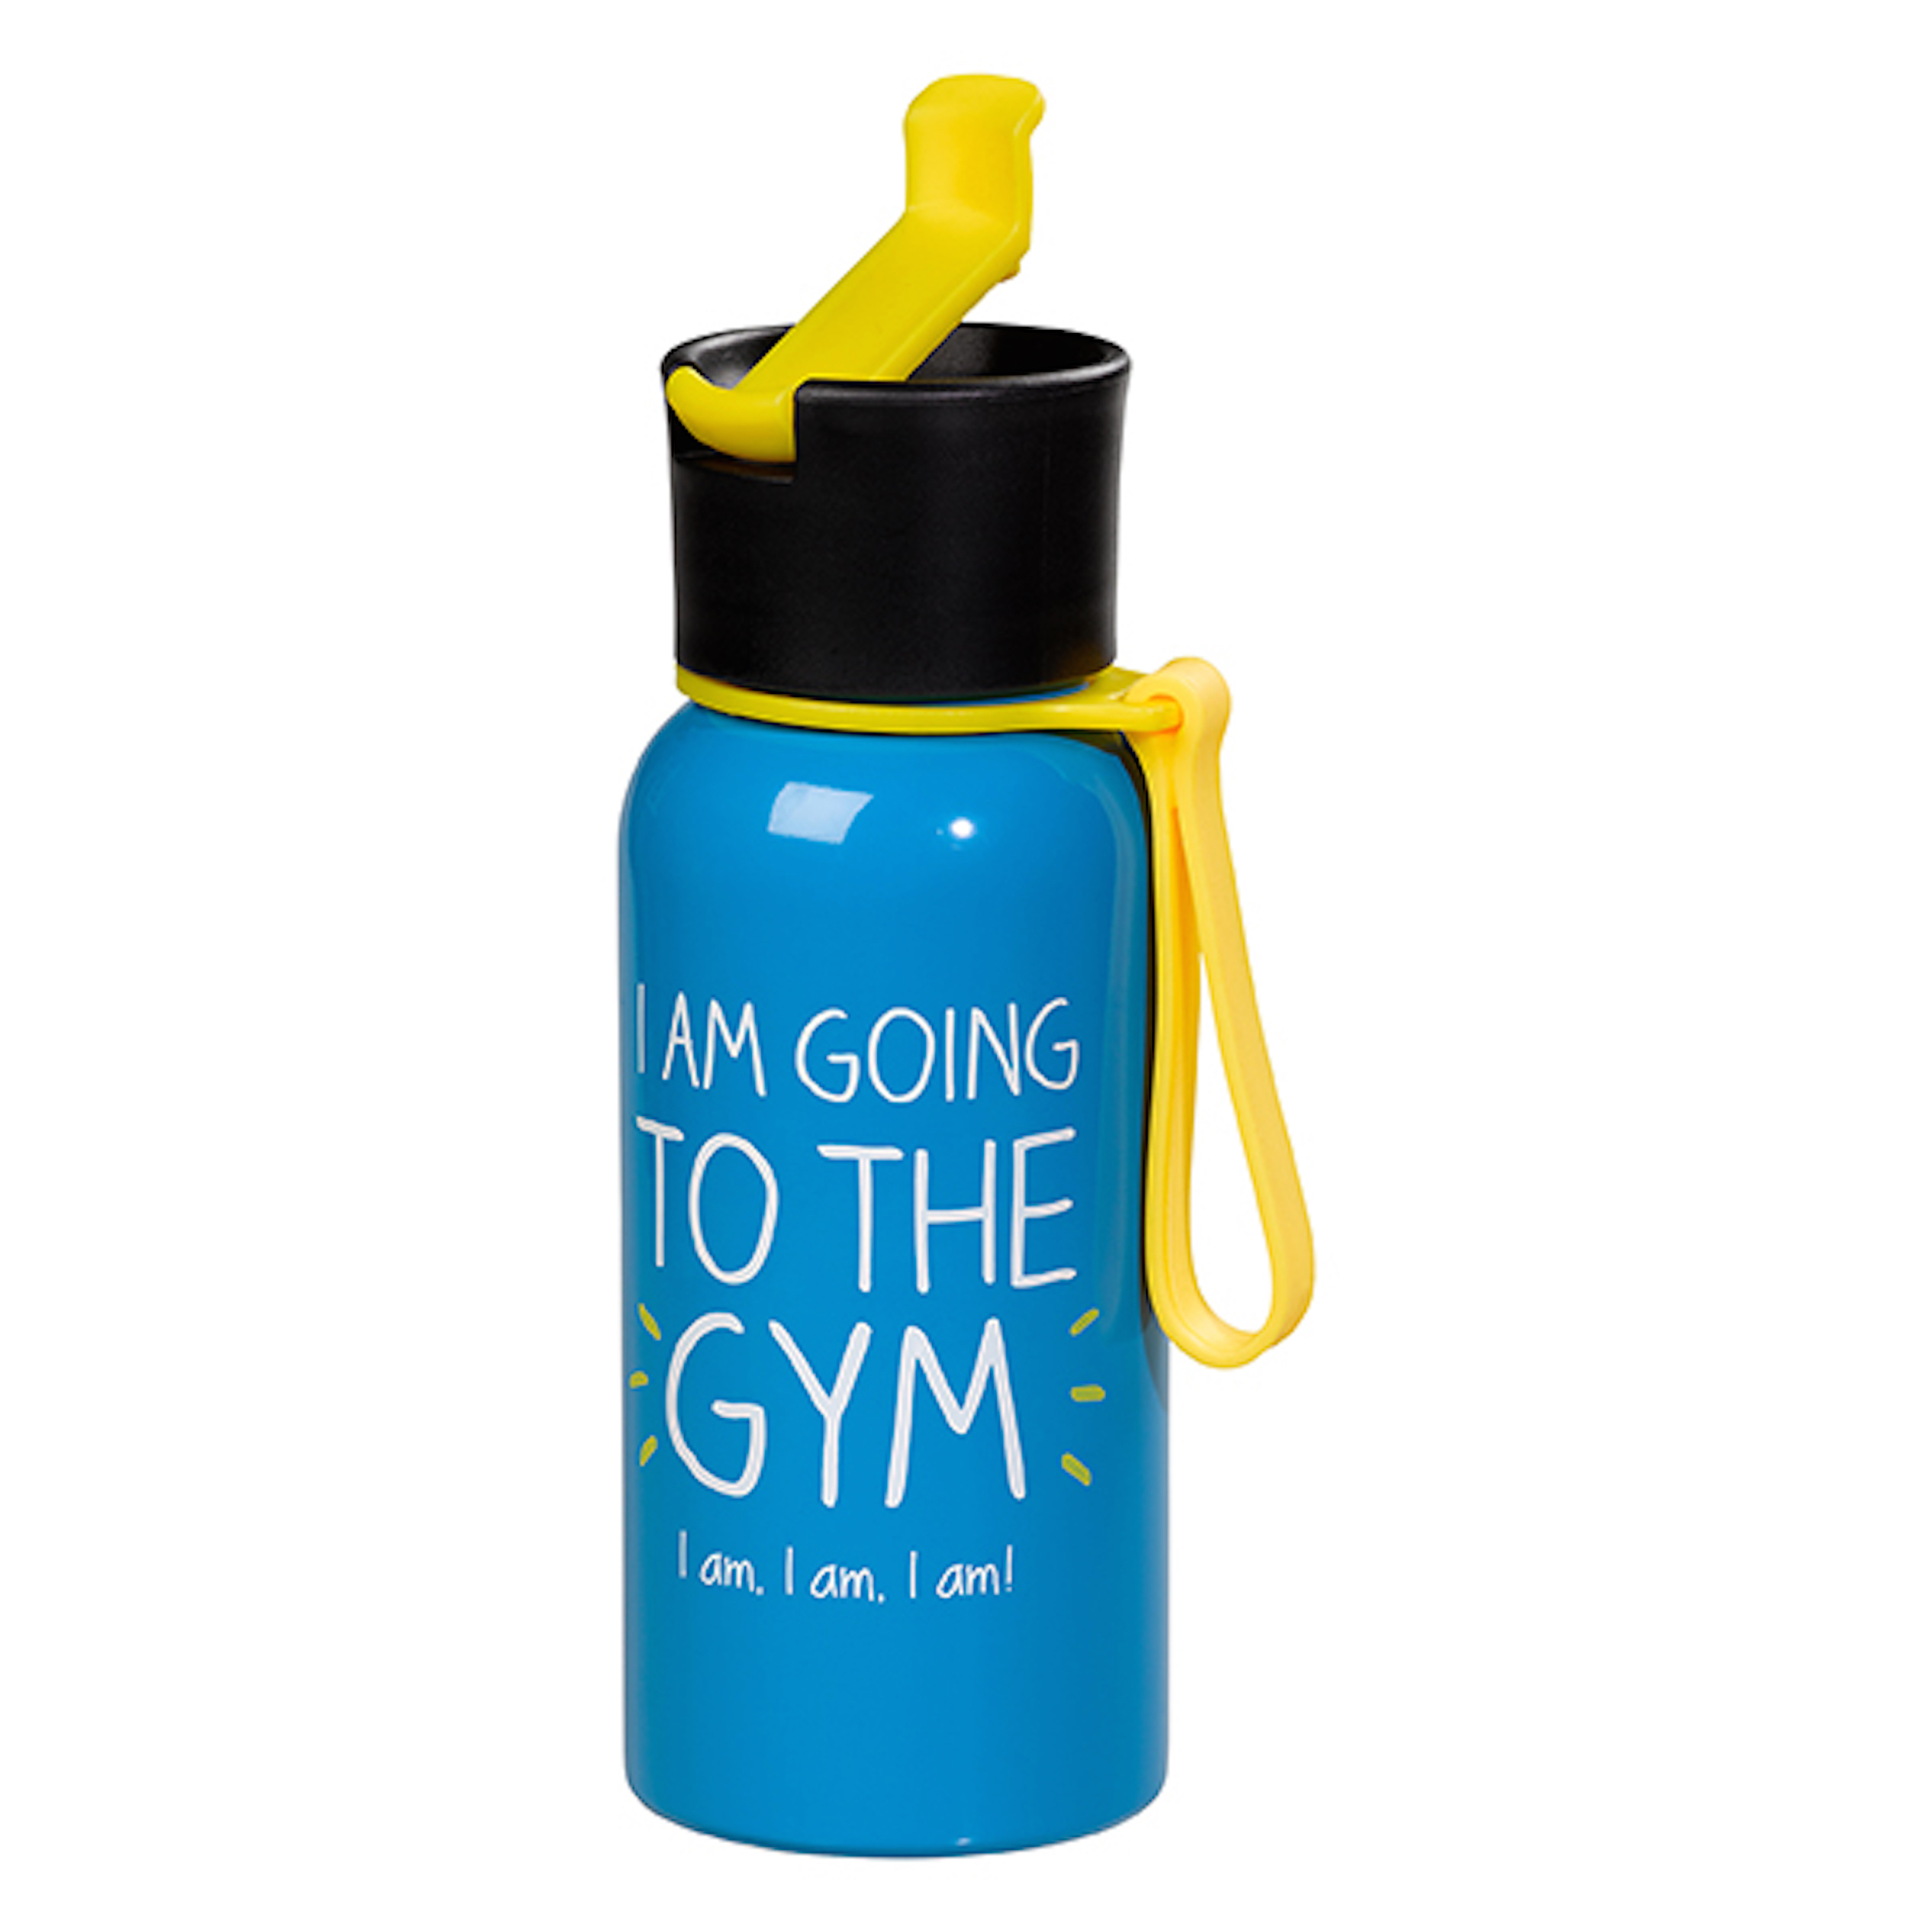 Going To The Gym' Water Bottle